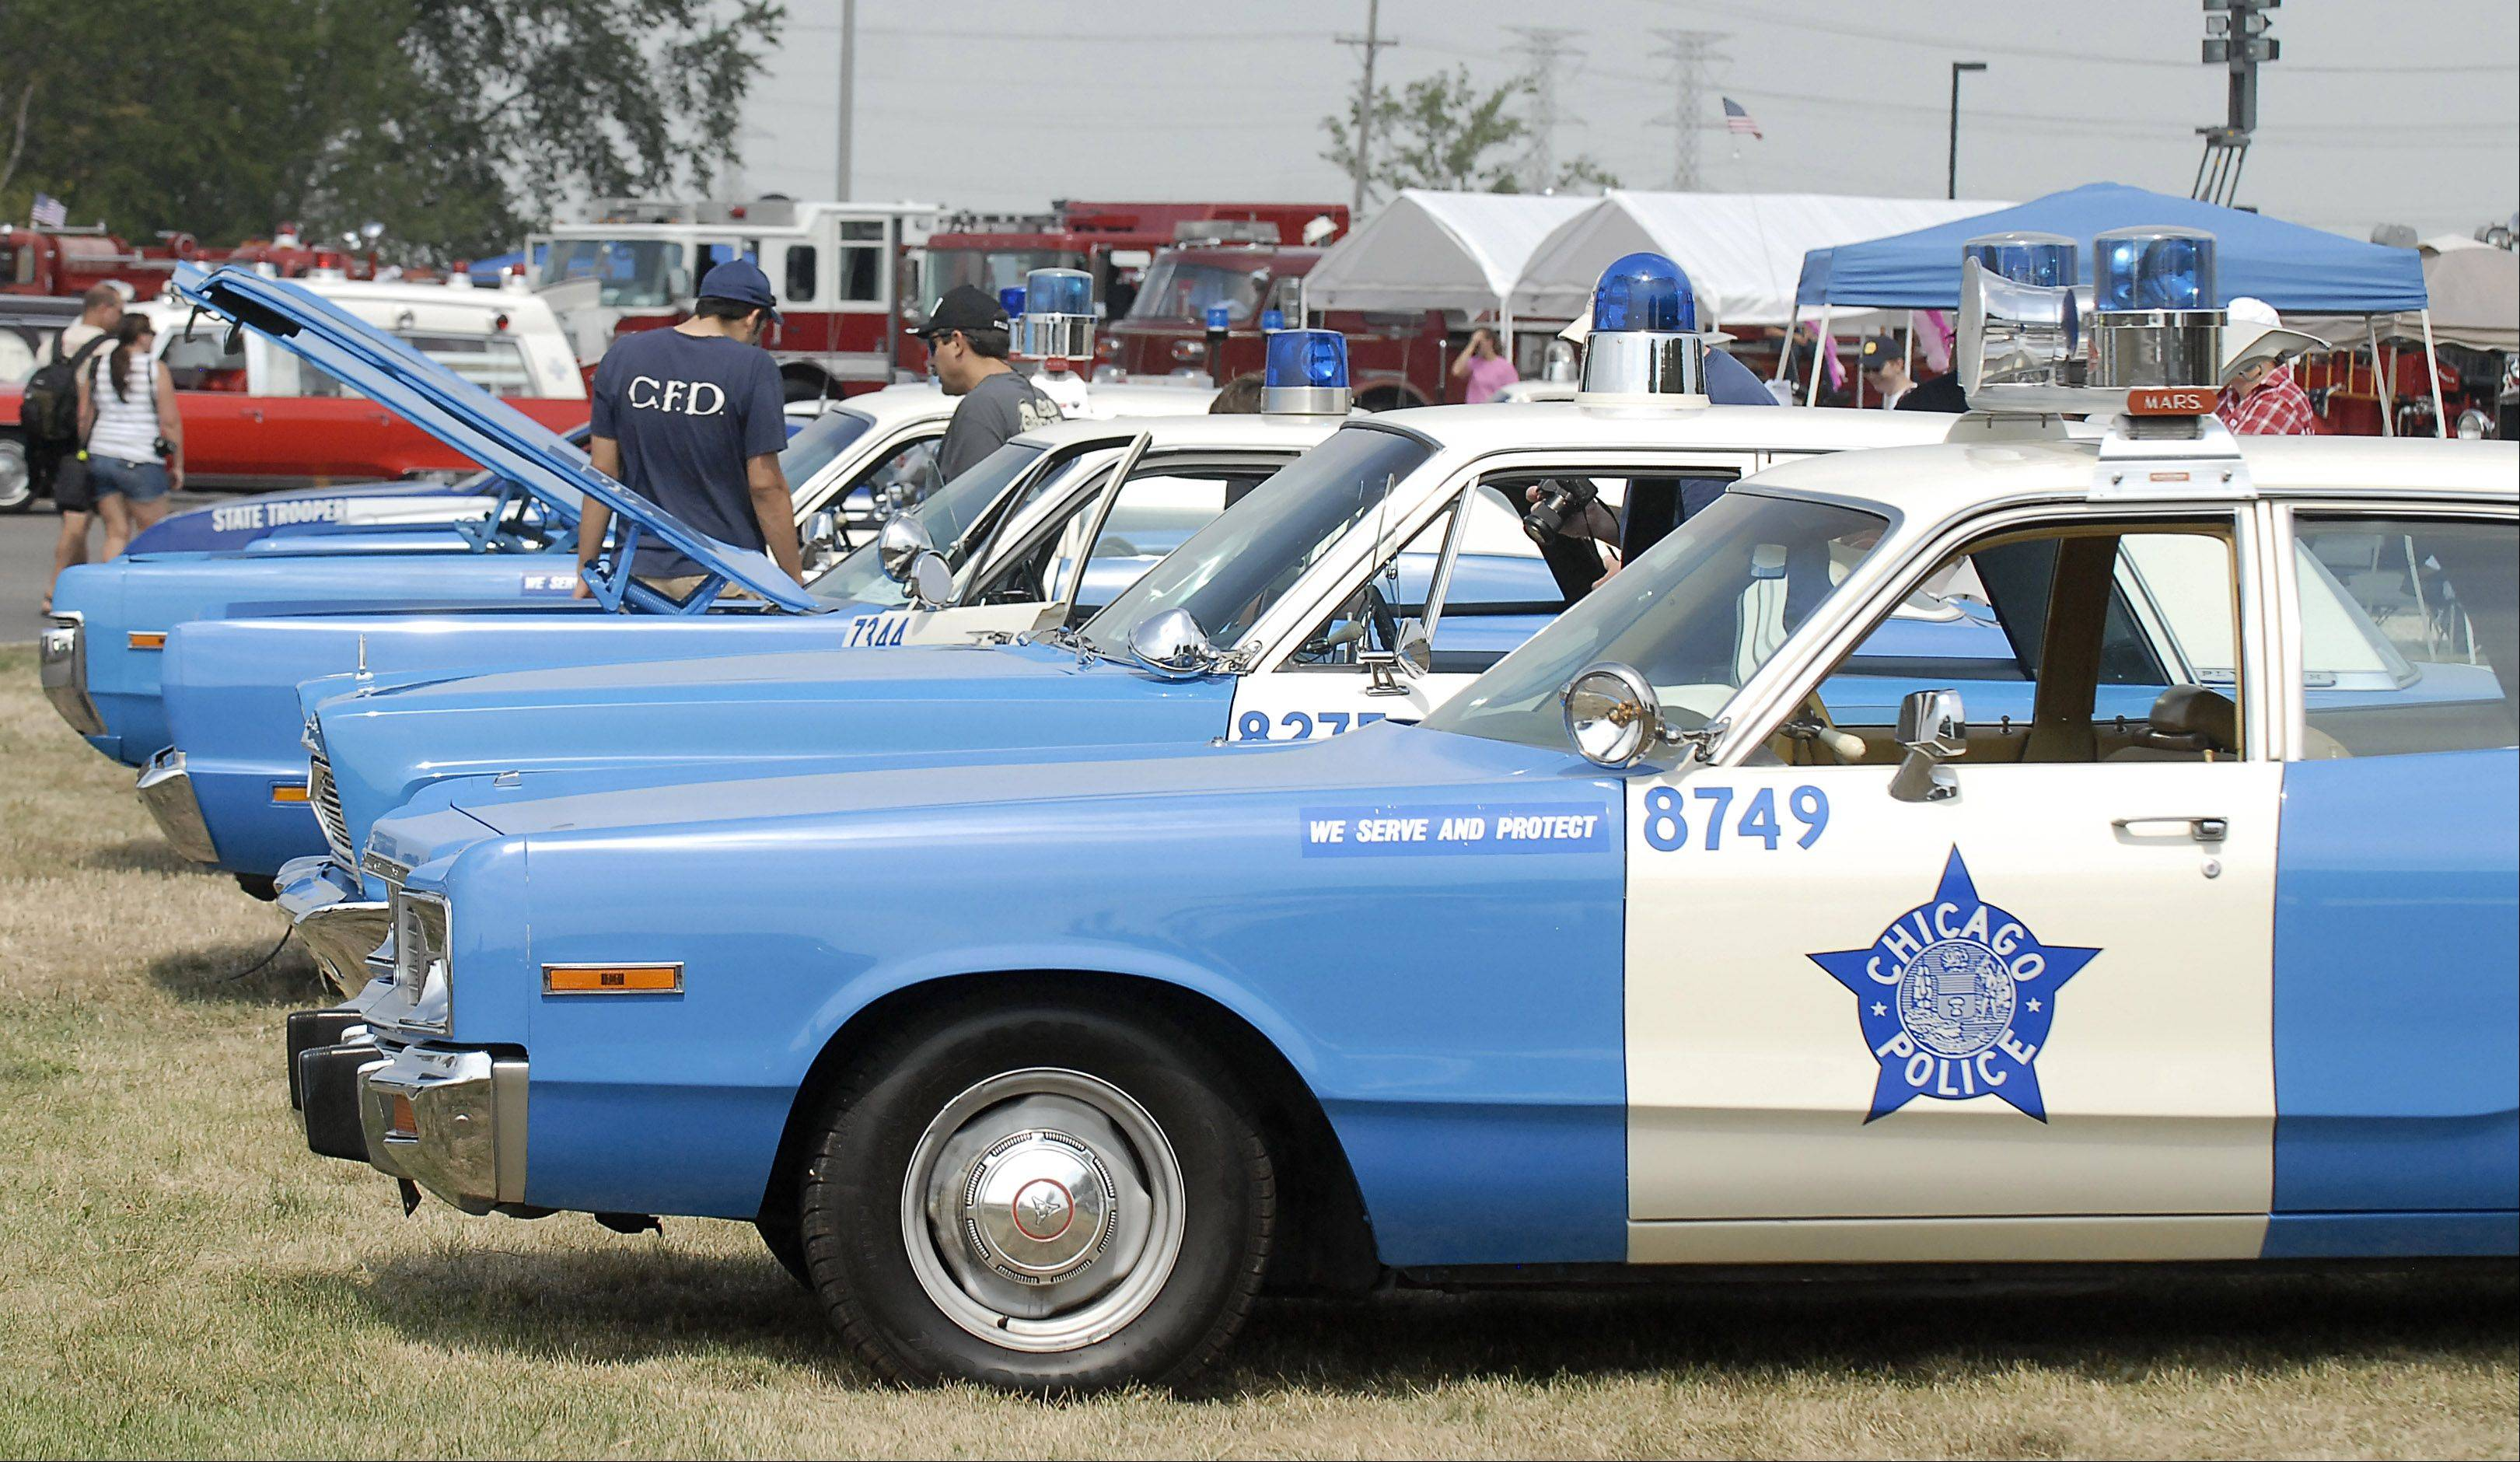 Classic police cars will be a highlight of the 16th annual Chicagoland Emergency Vehicle Show during North Aurora Days from 10 a.m. to 4 p.m. Saturday at Pentair Water on Airport Road and Oberweis Dairy off Randall Road.